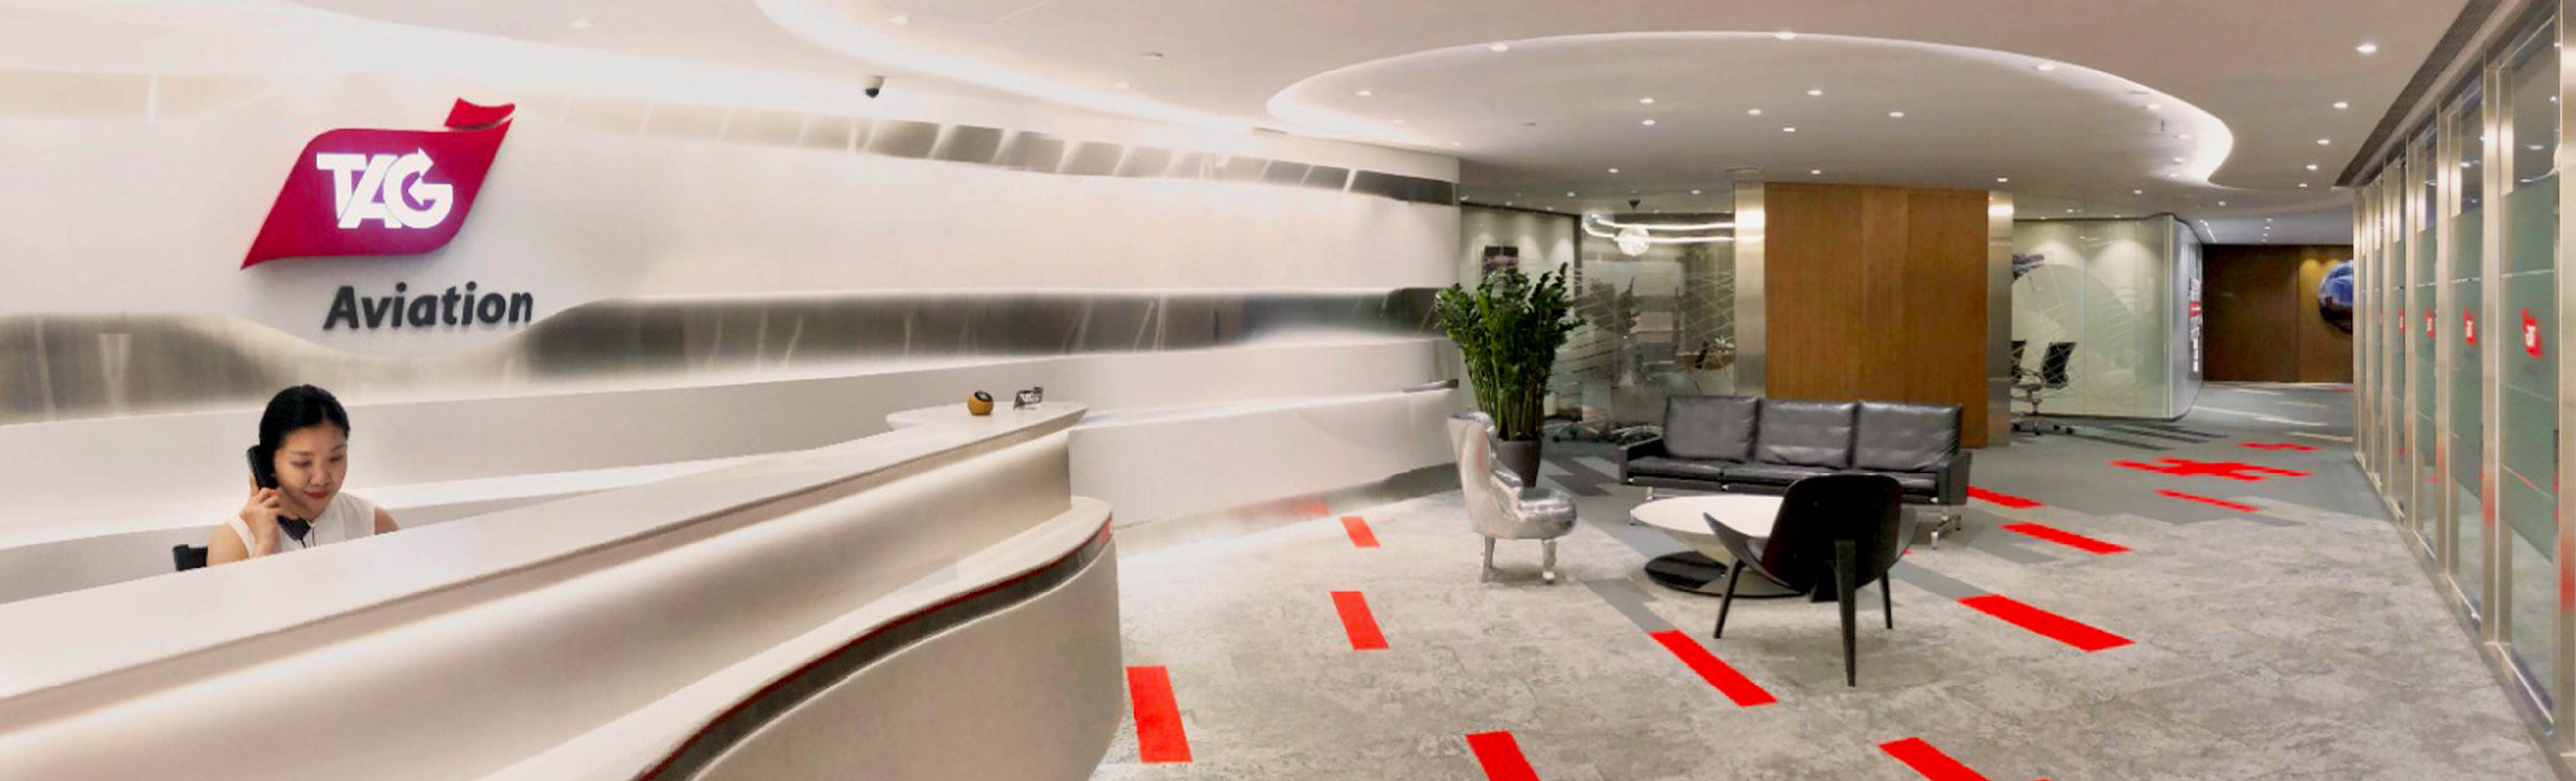 TAG Aviation Asia expands its presence with new offices in Hong Kong